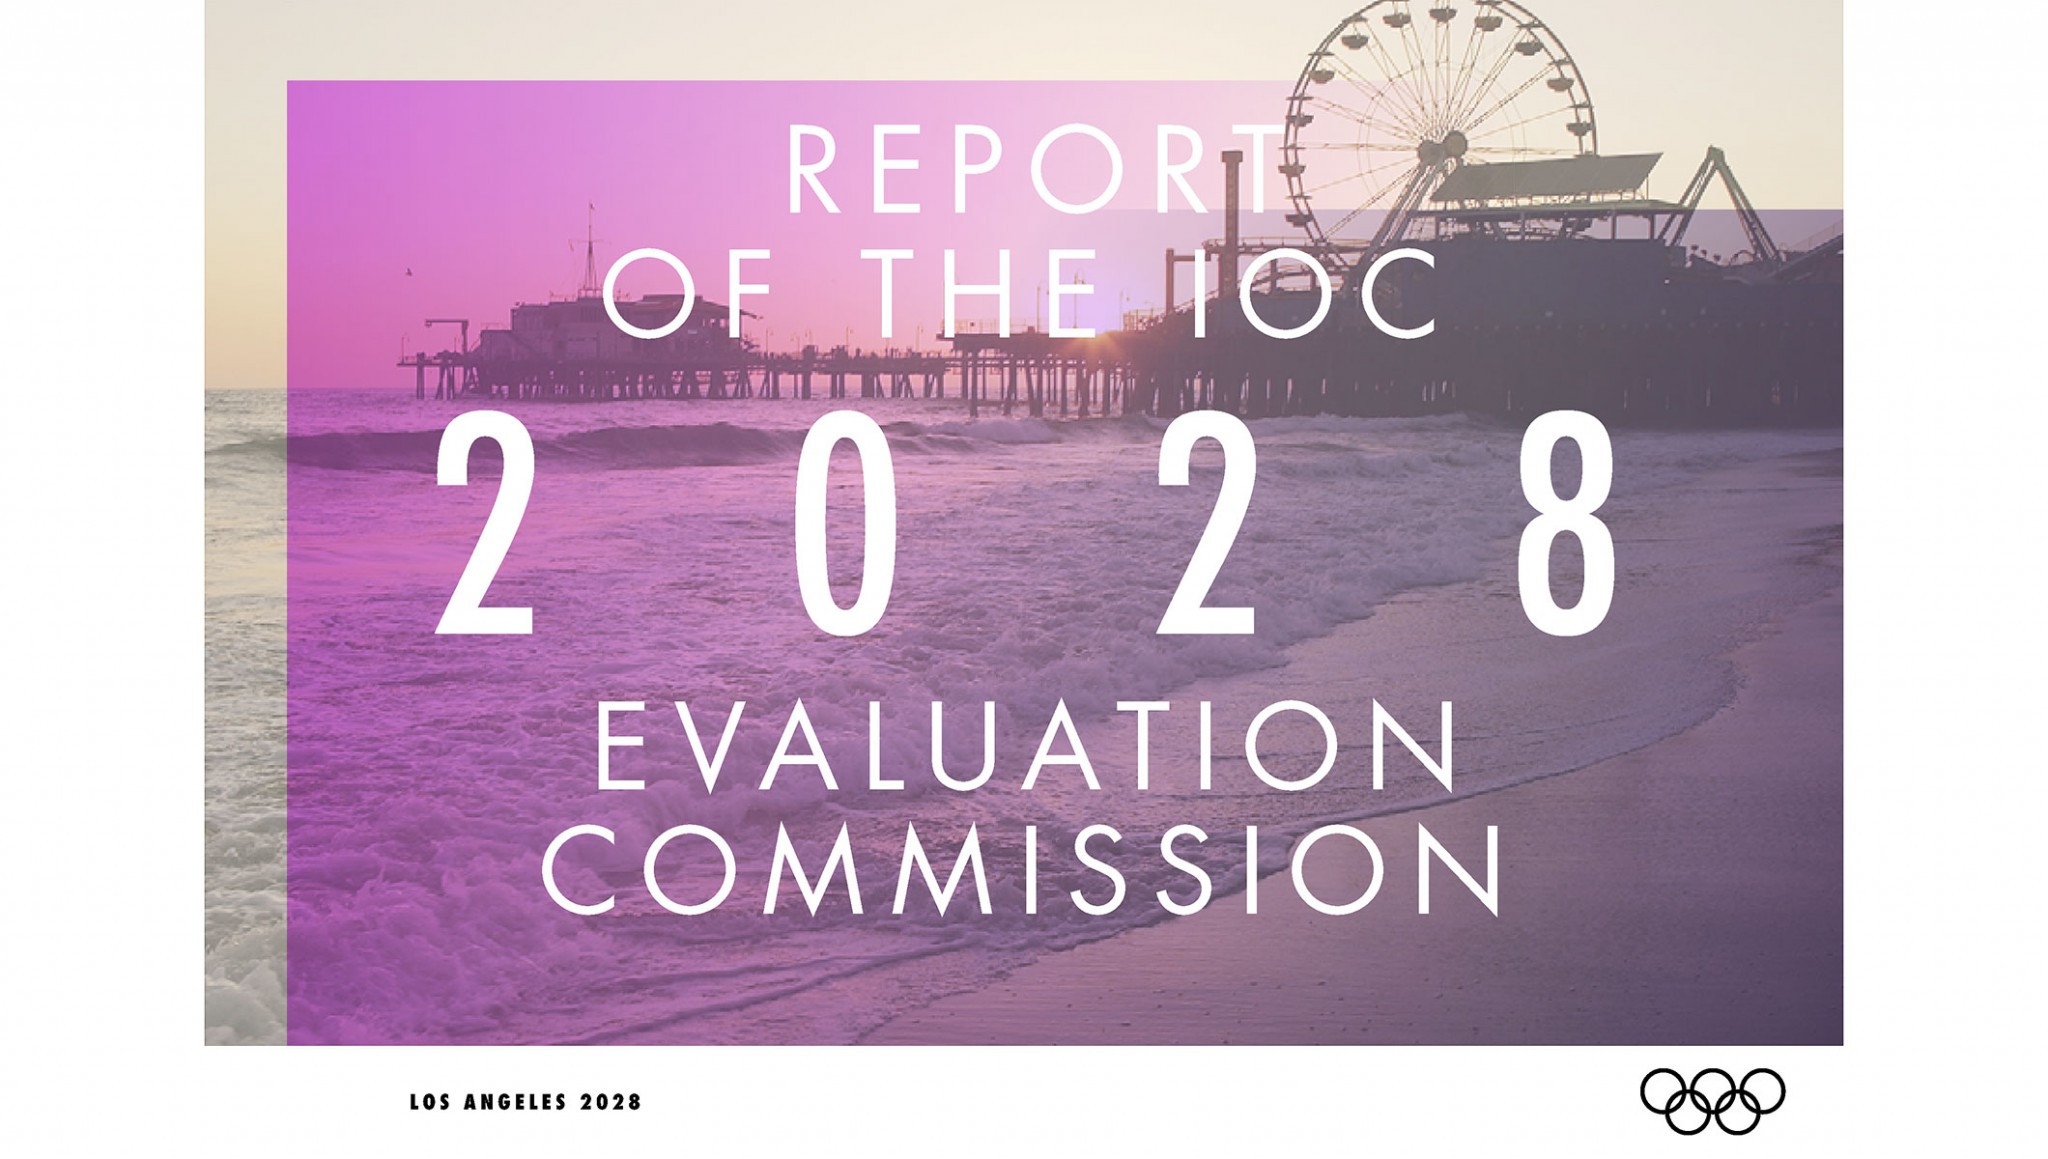 IOC Evaluation Commission confirms Los Angeles 2028 meets Olympic and Paralympic hosting requirements